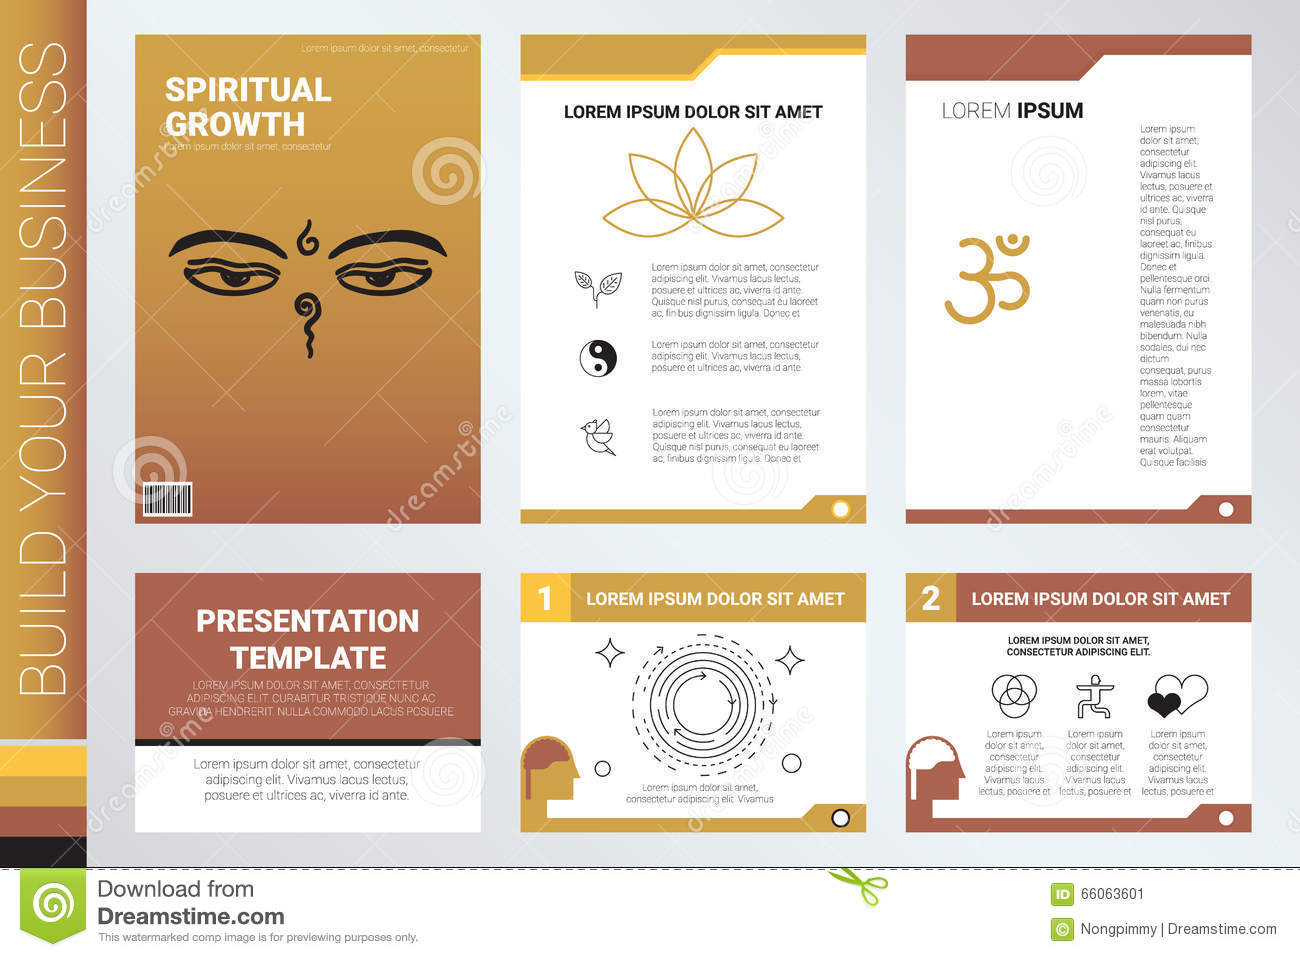 Book Cover And Presentation Template Vector Image 66063601 – Company Information Template